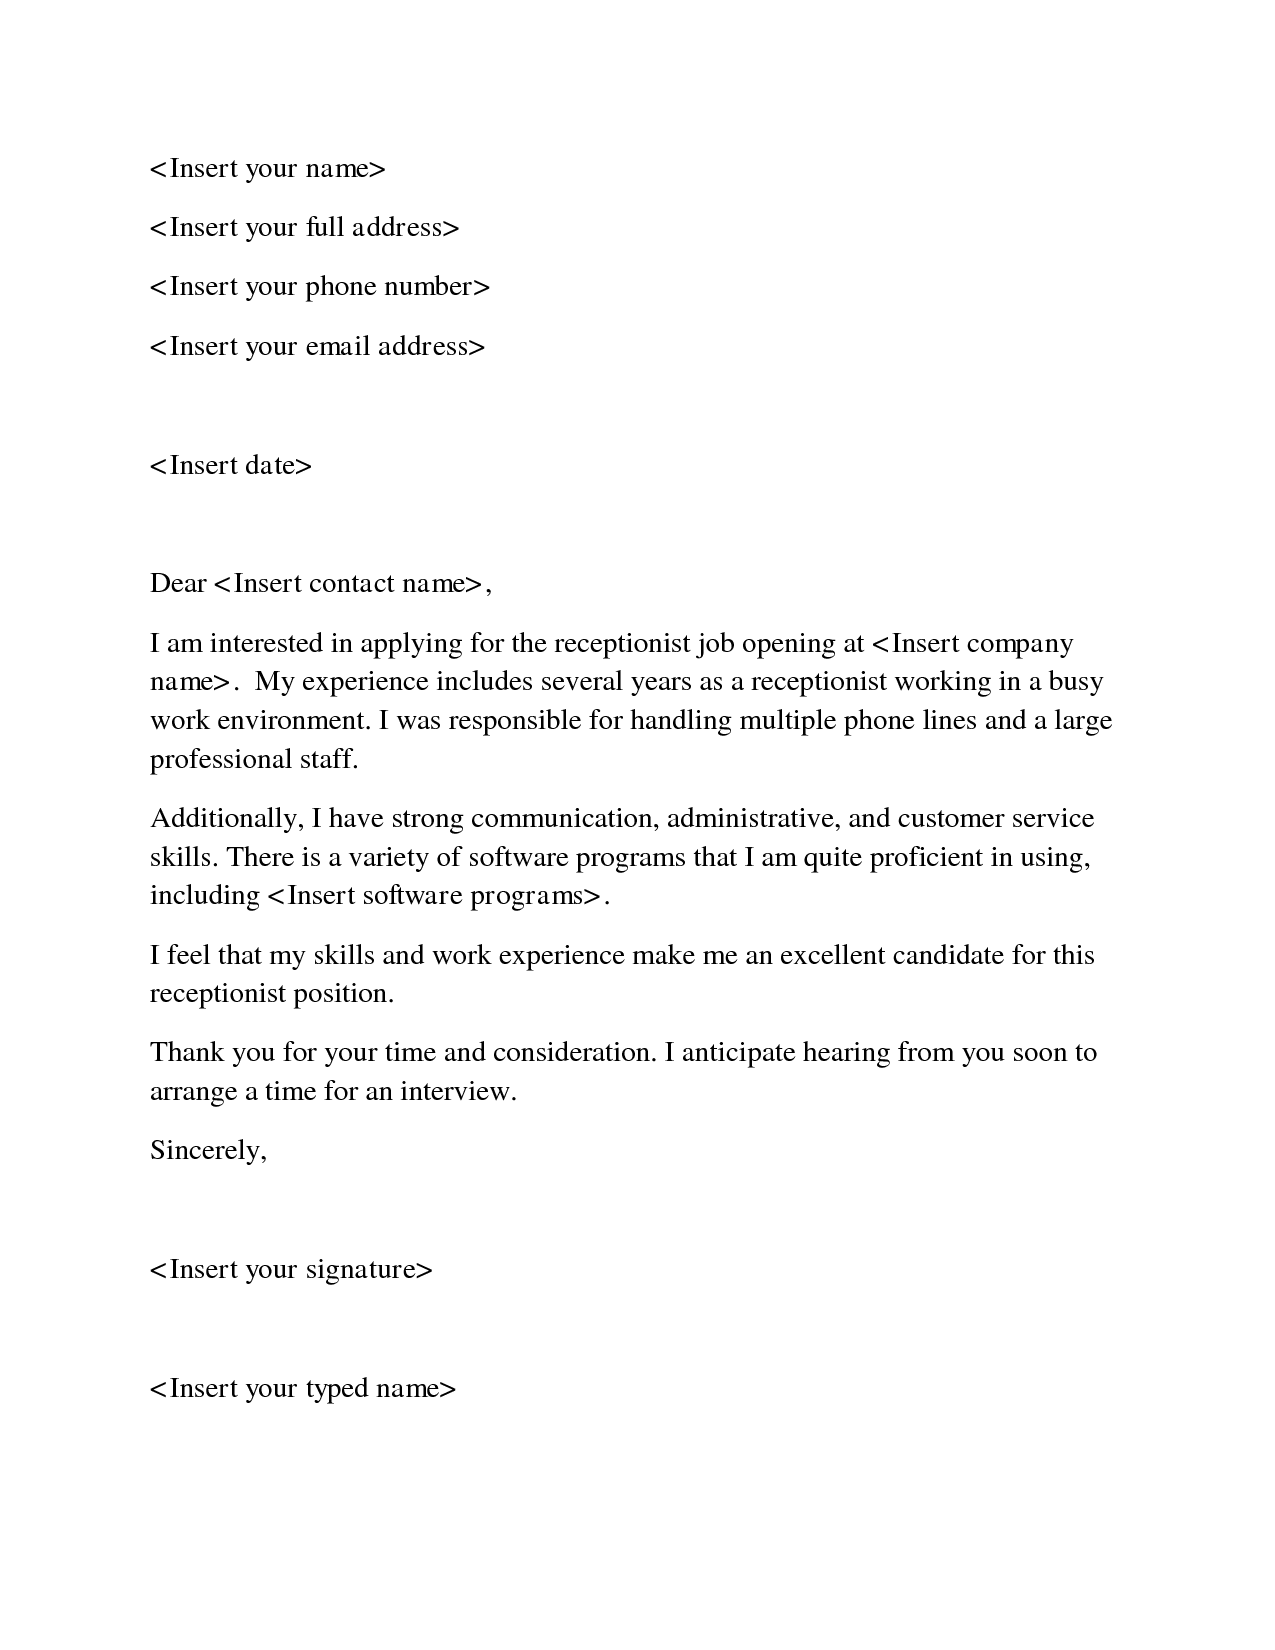 cover letter help receptionist resume top essay writingcover letter samples for jobs application letter sample - What To Include In A Resume Cover Letter